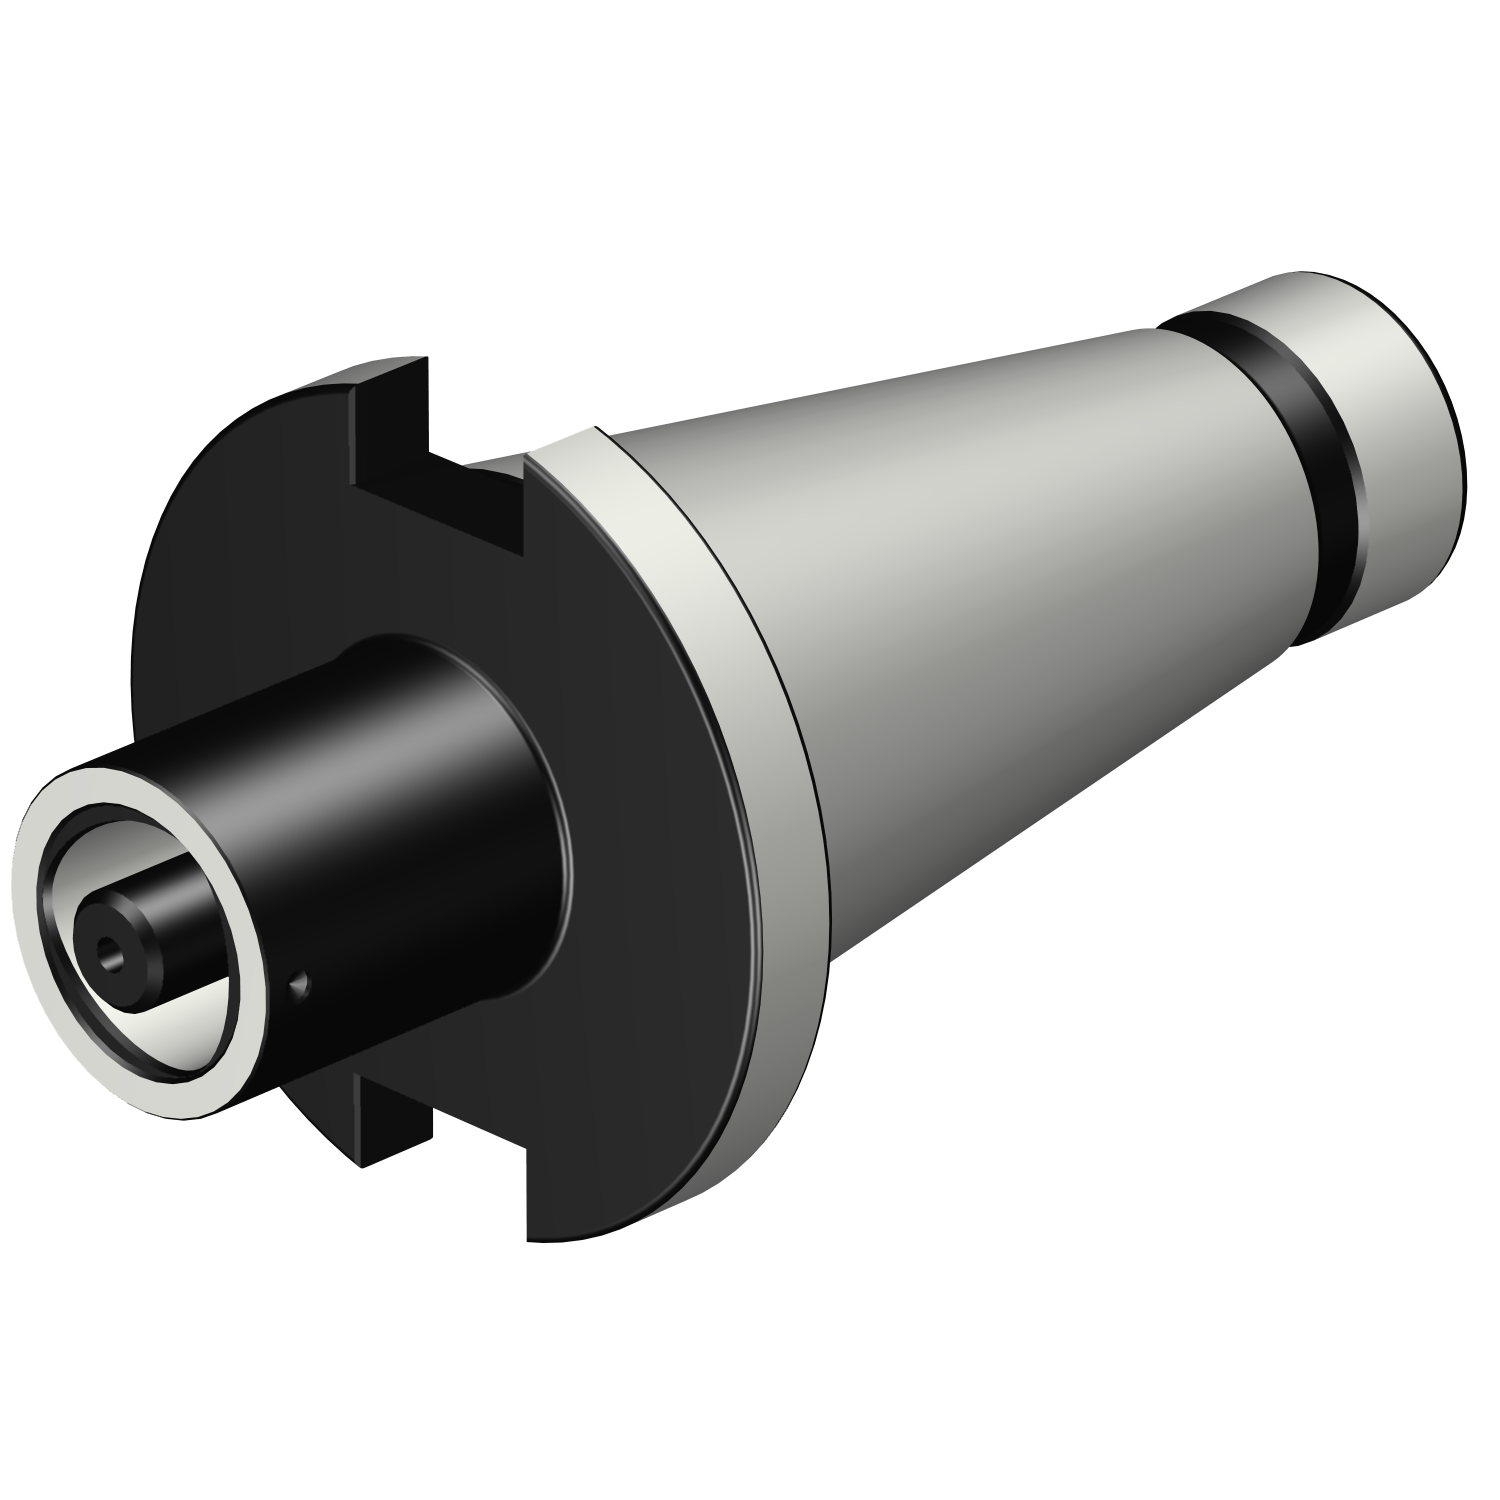 C4-390.00-50 060 - Cross System, Extension & Reducer Adapters